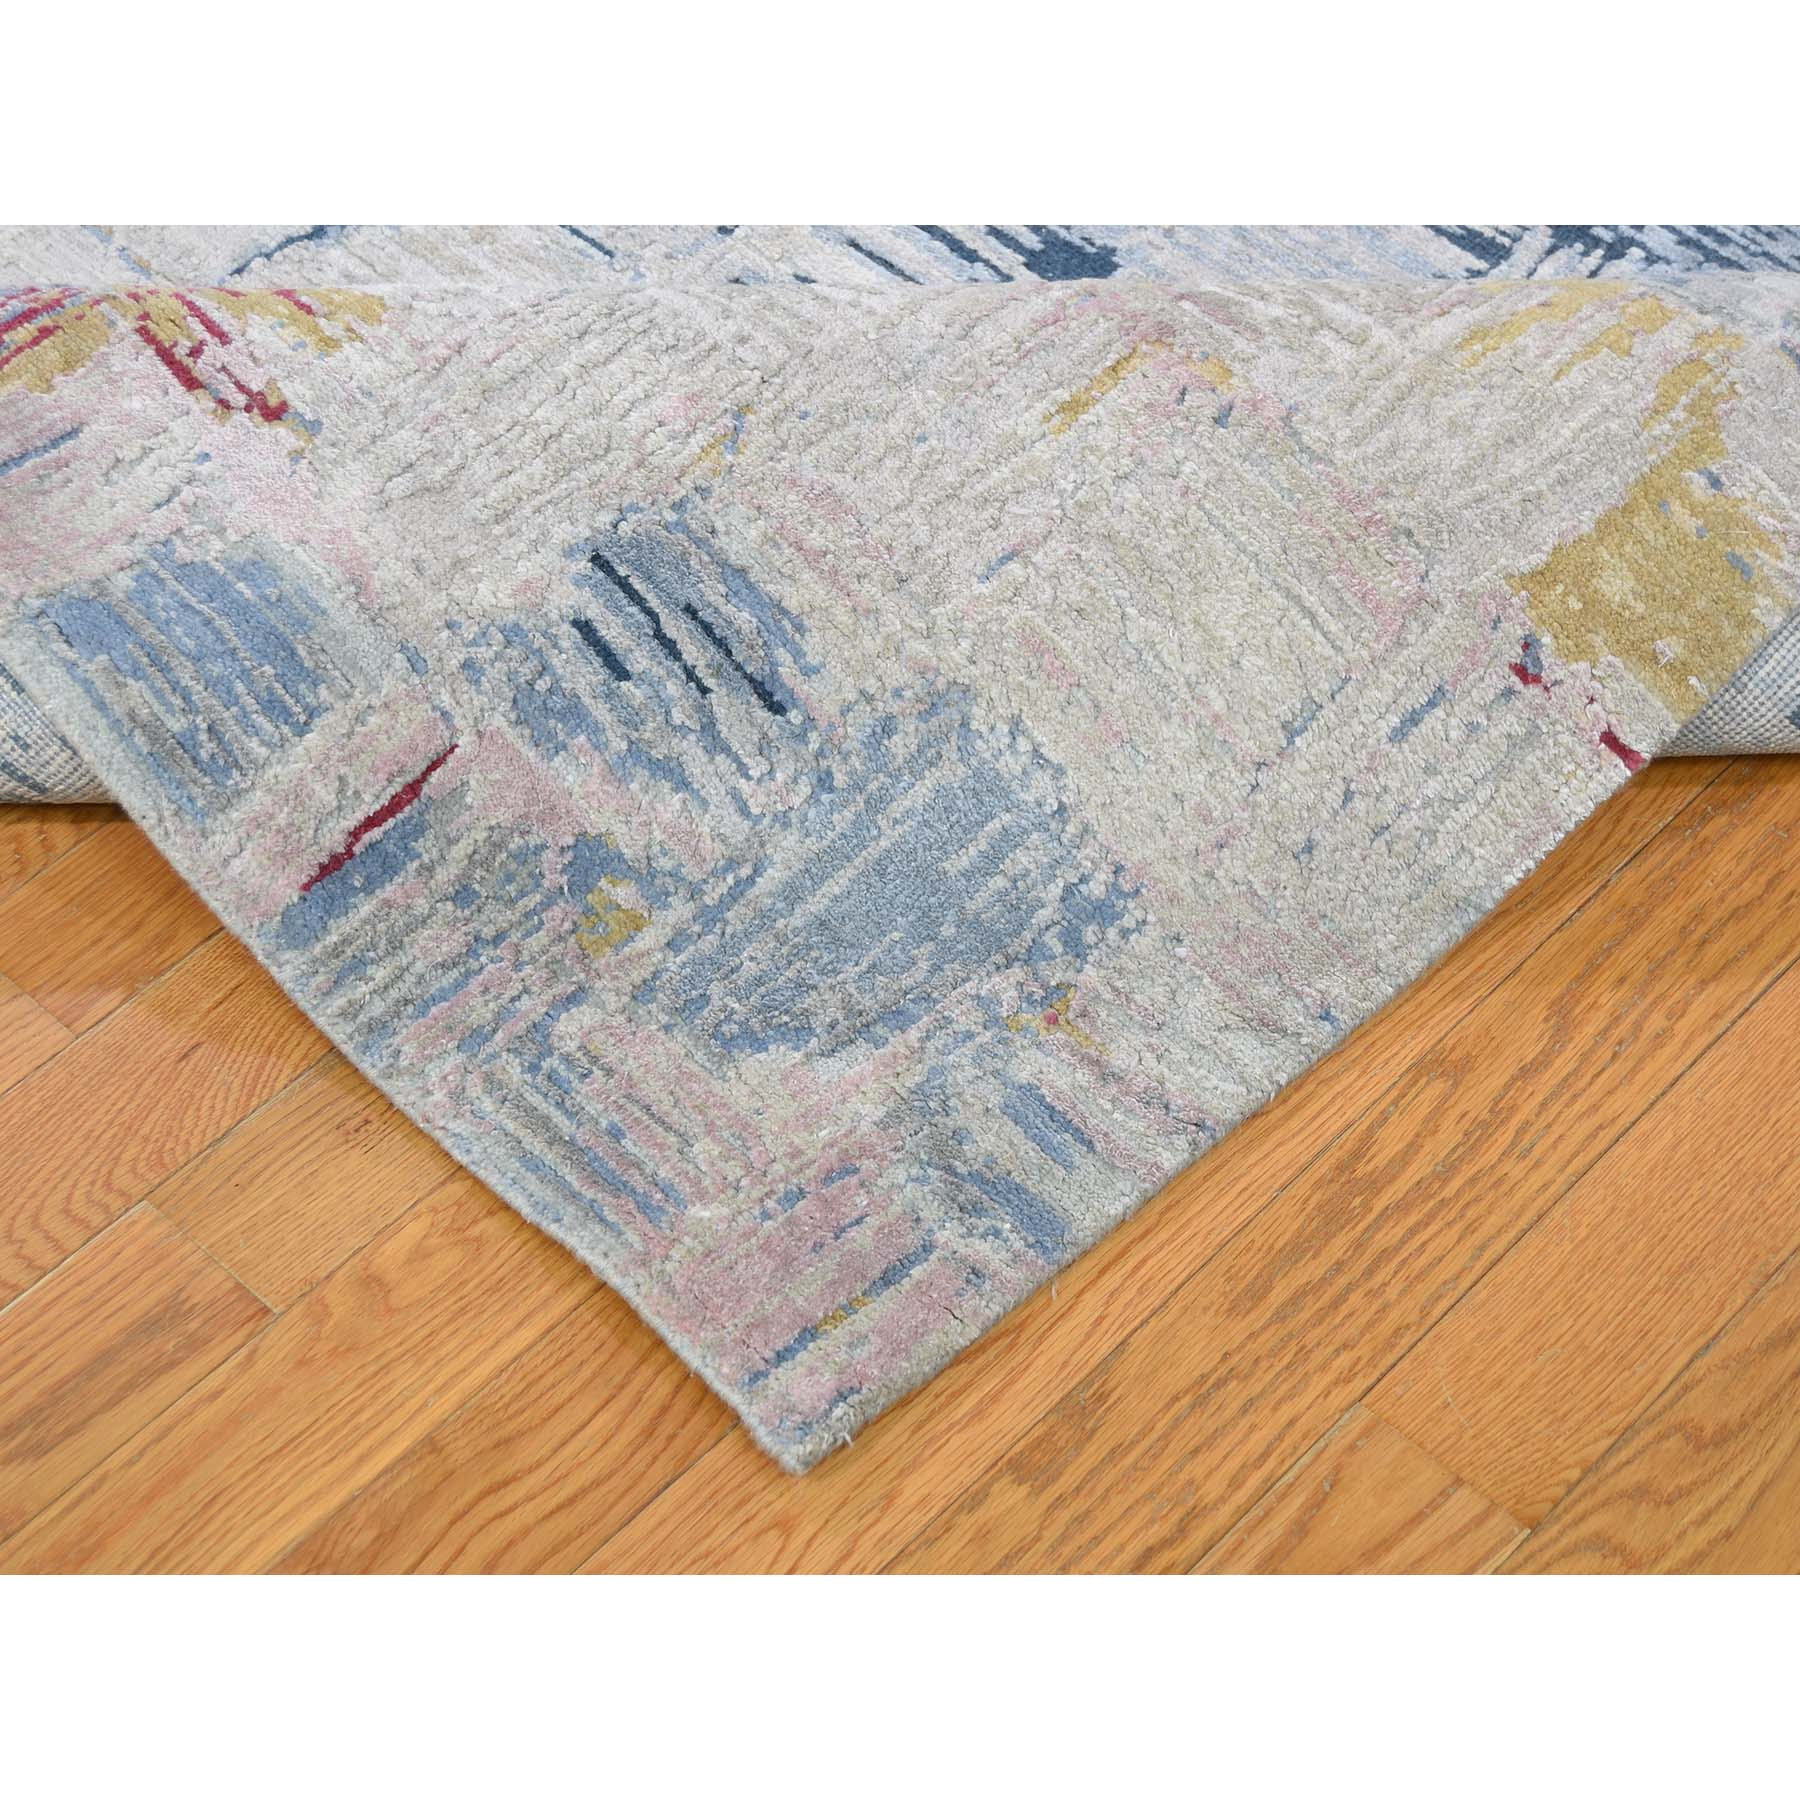 """8'10""""x12' THE CROSSING POINTS, Wool And Pure Silk Hand-Knotted Oriental Rug"""